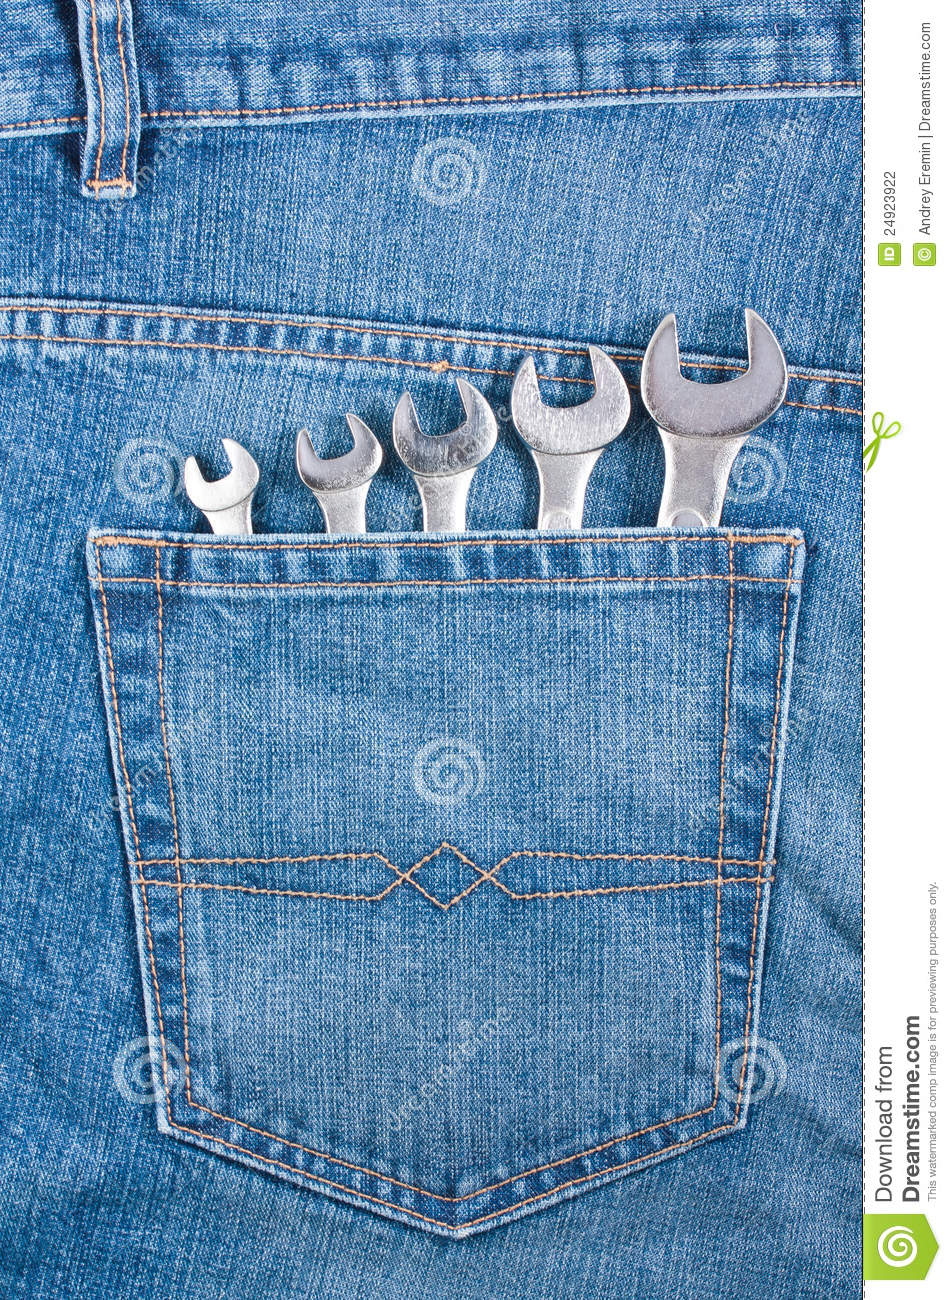 blue jeans pocket with wrenches stock photography image